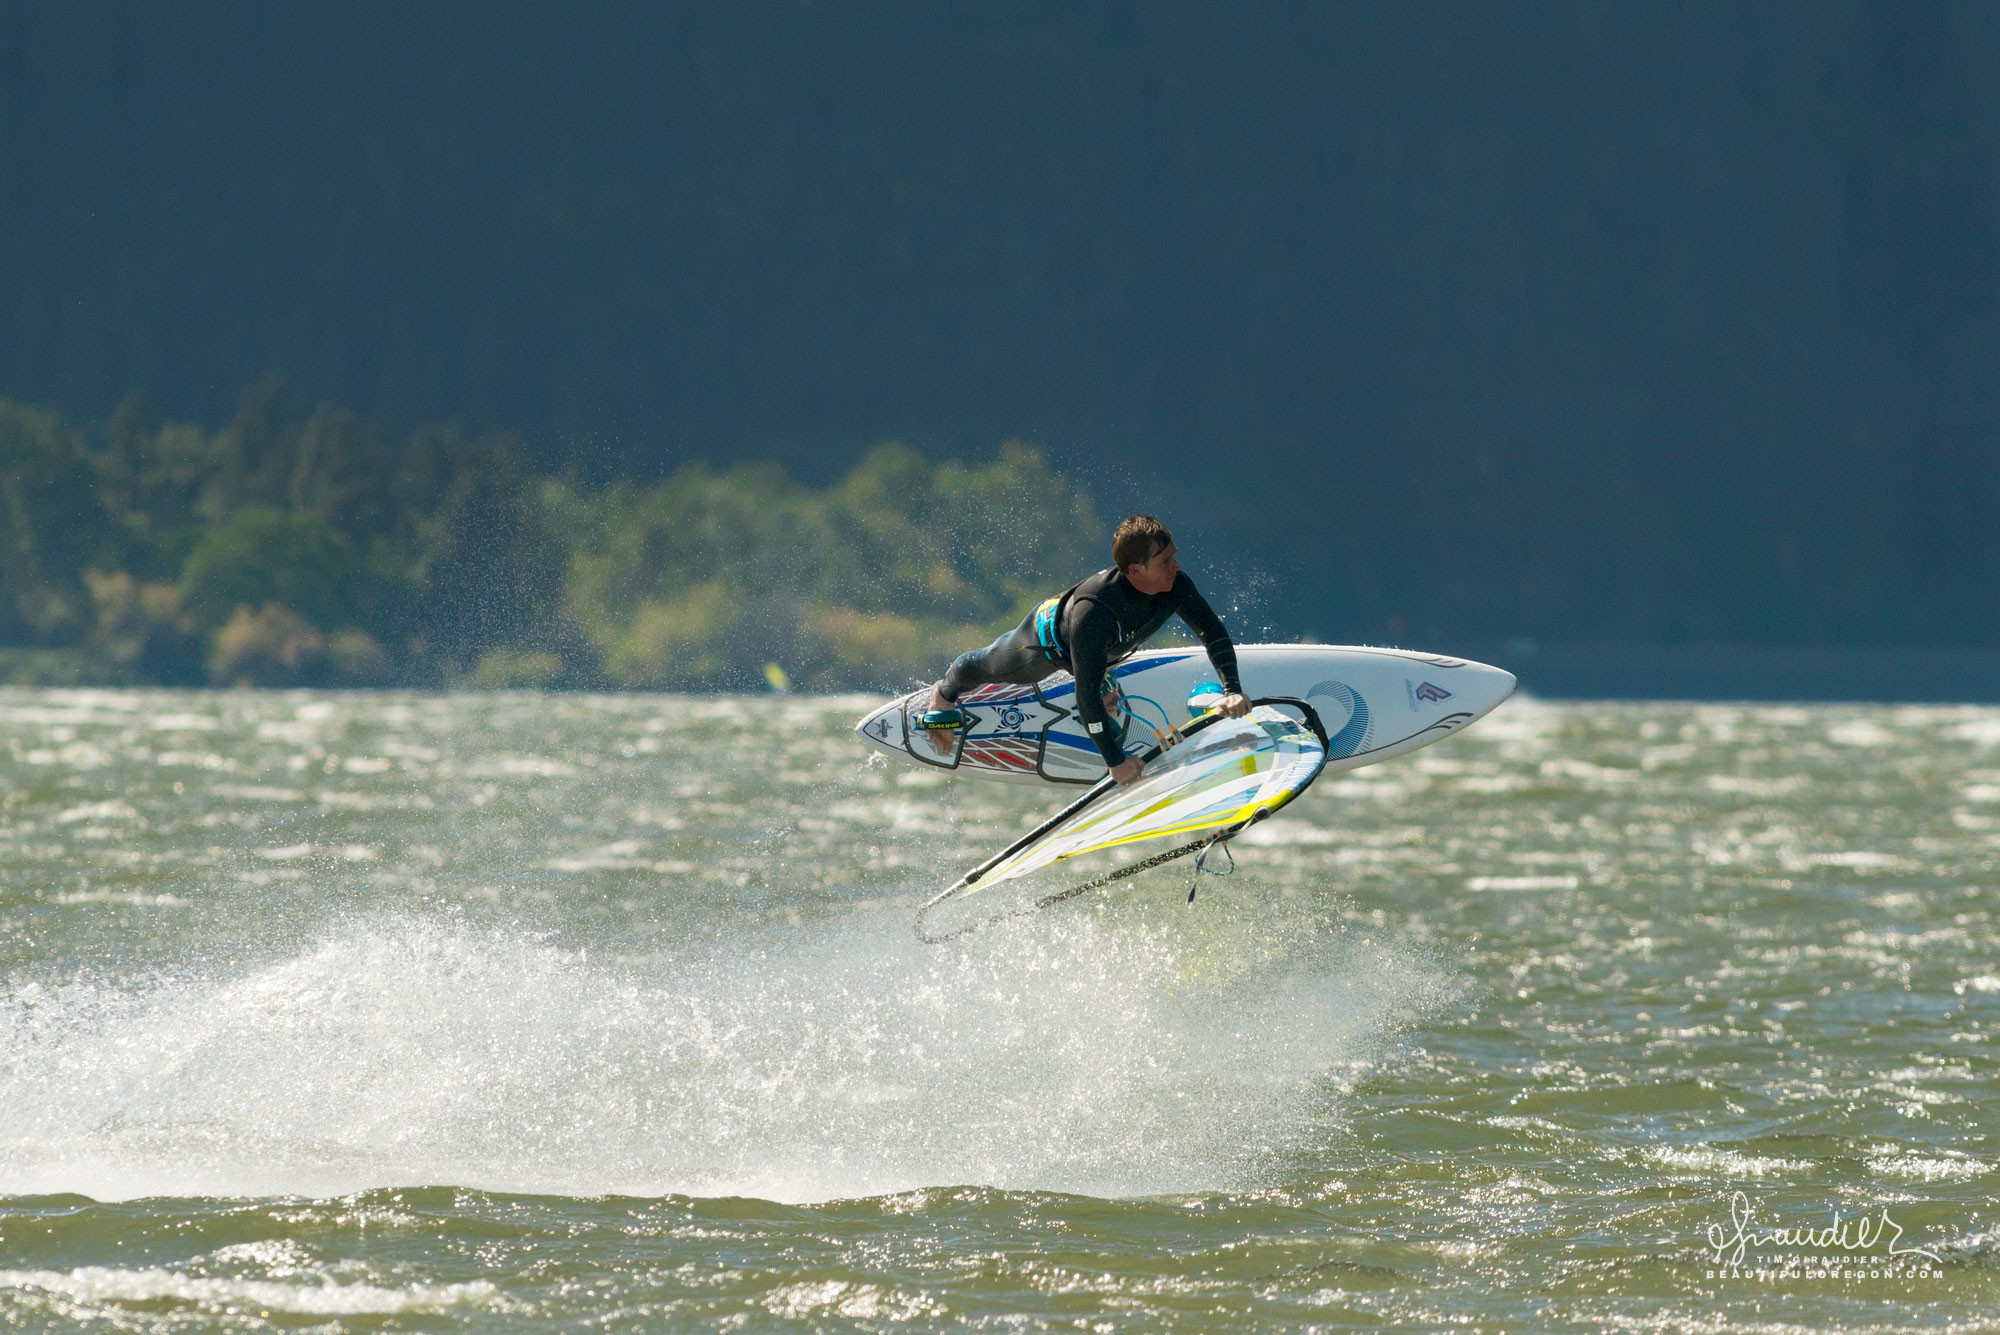 A windsurfer flies above the spray on a windy day in the Columbia River Gorge. Klickitat County, Washington State outdoor recreation.